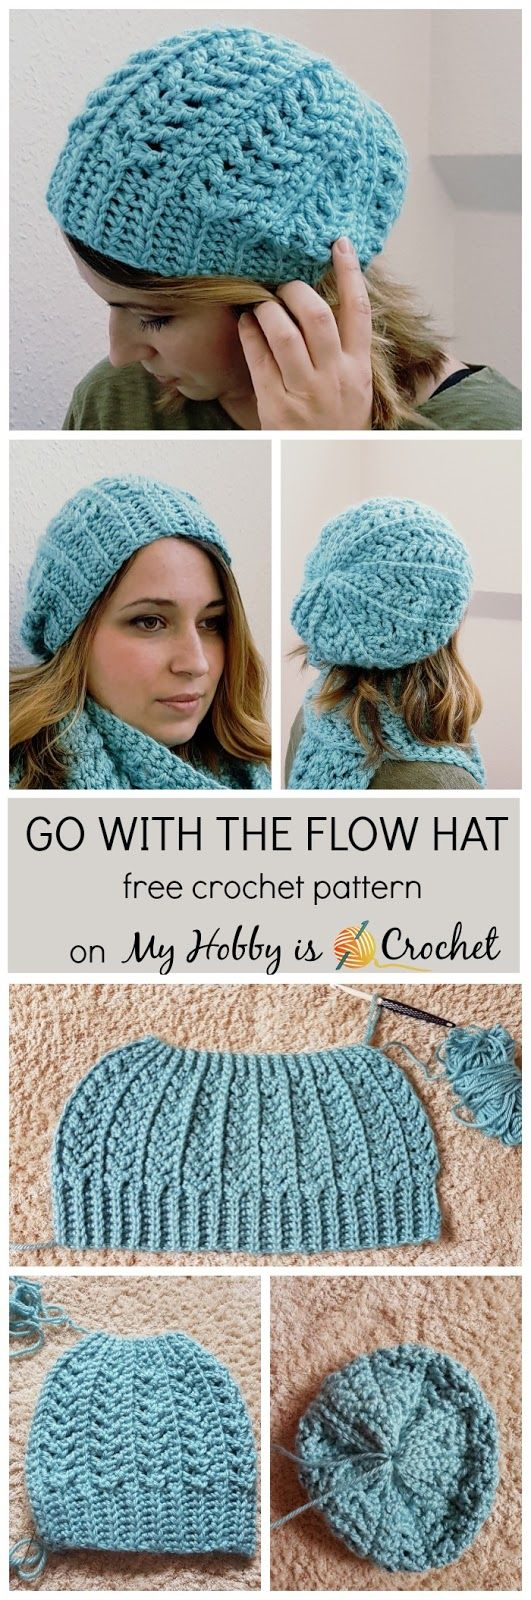 Best 25 crochet hat patterns ideas on pinterest crochet hats go with the flow hat free crochet pattern on myhobbyiscrochet bankloansurffo Image collections